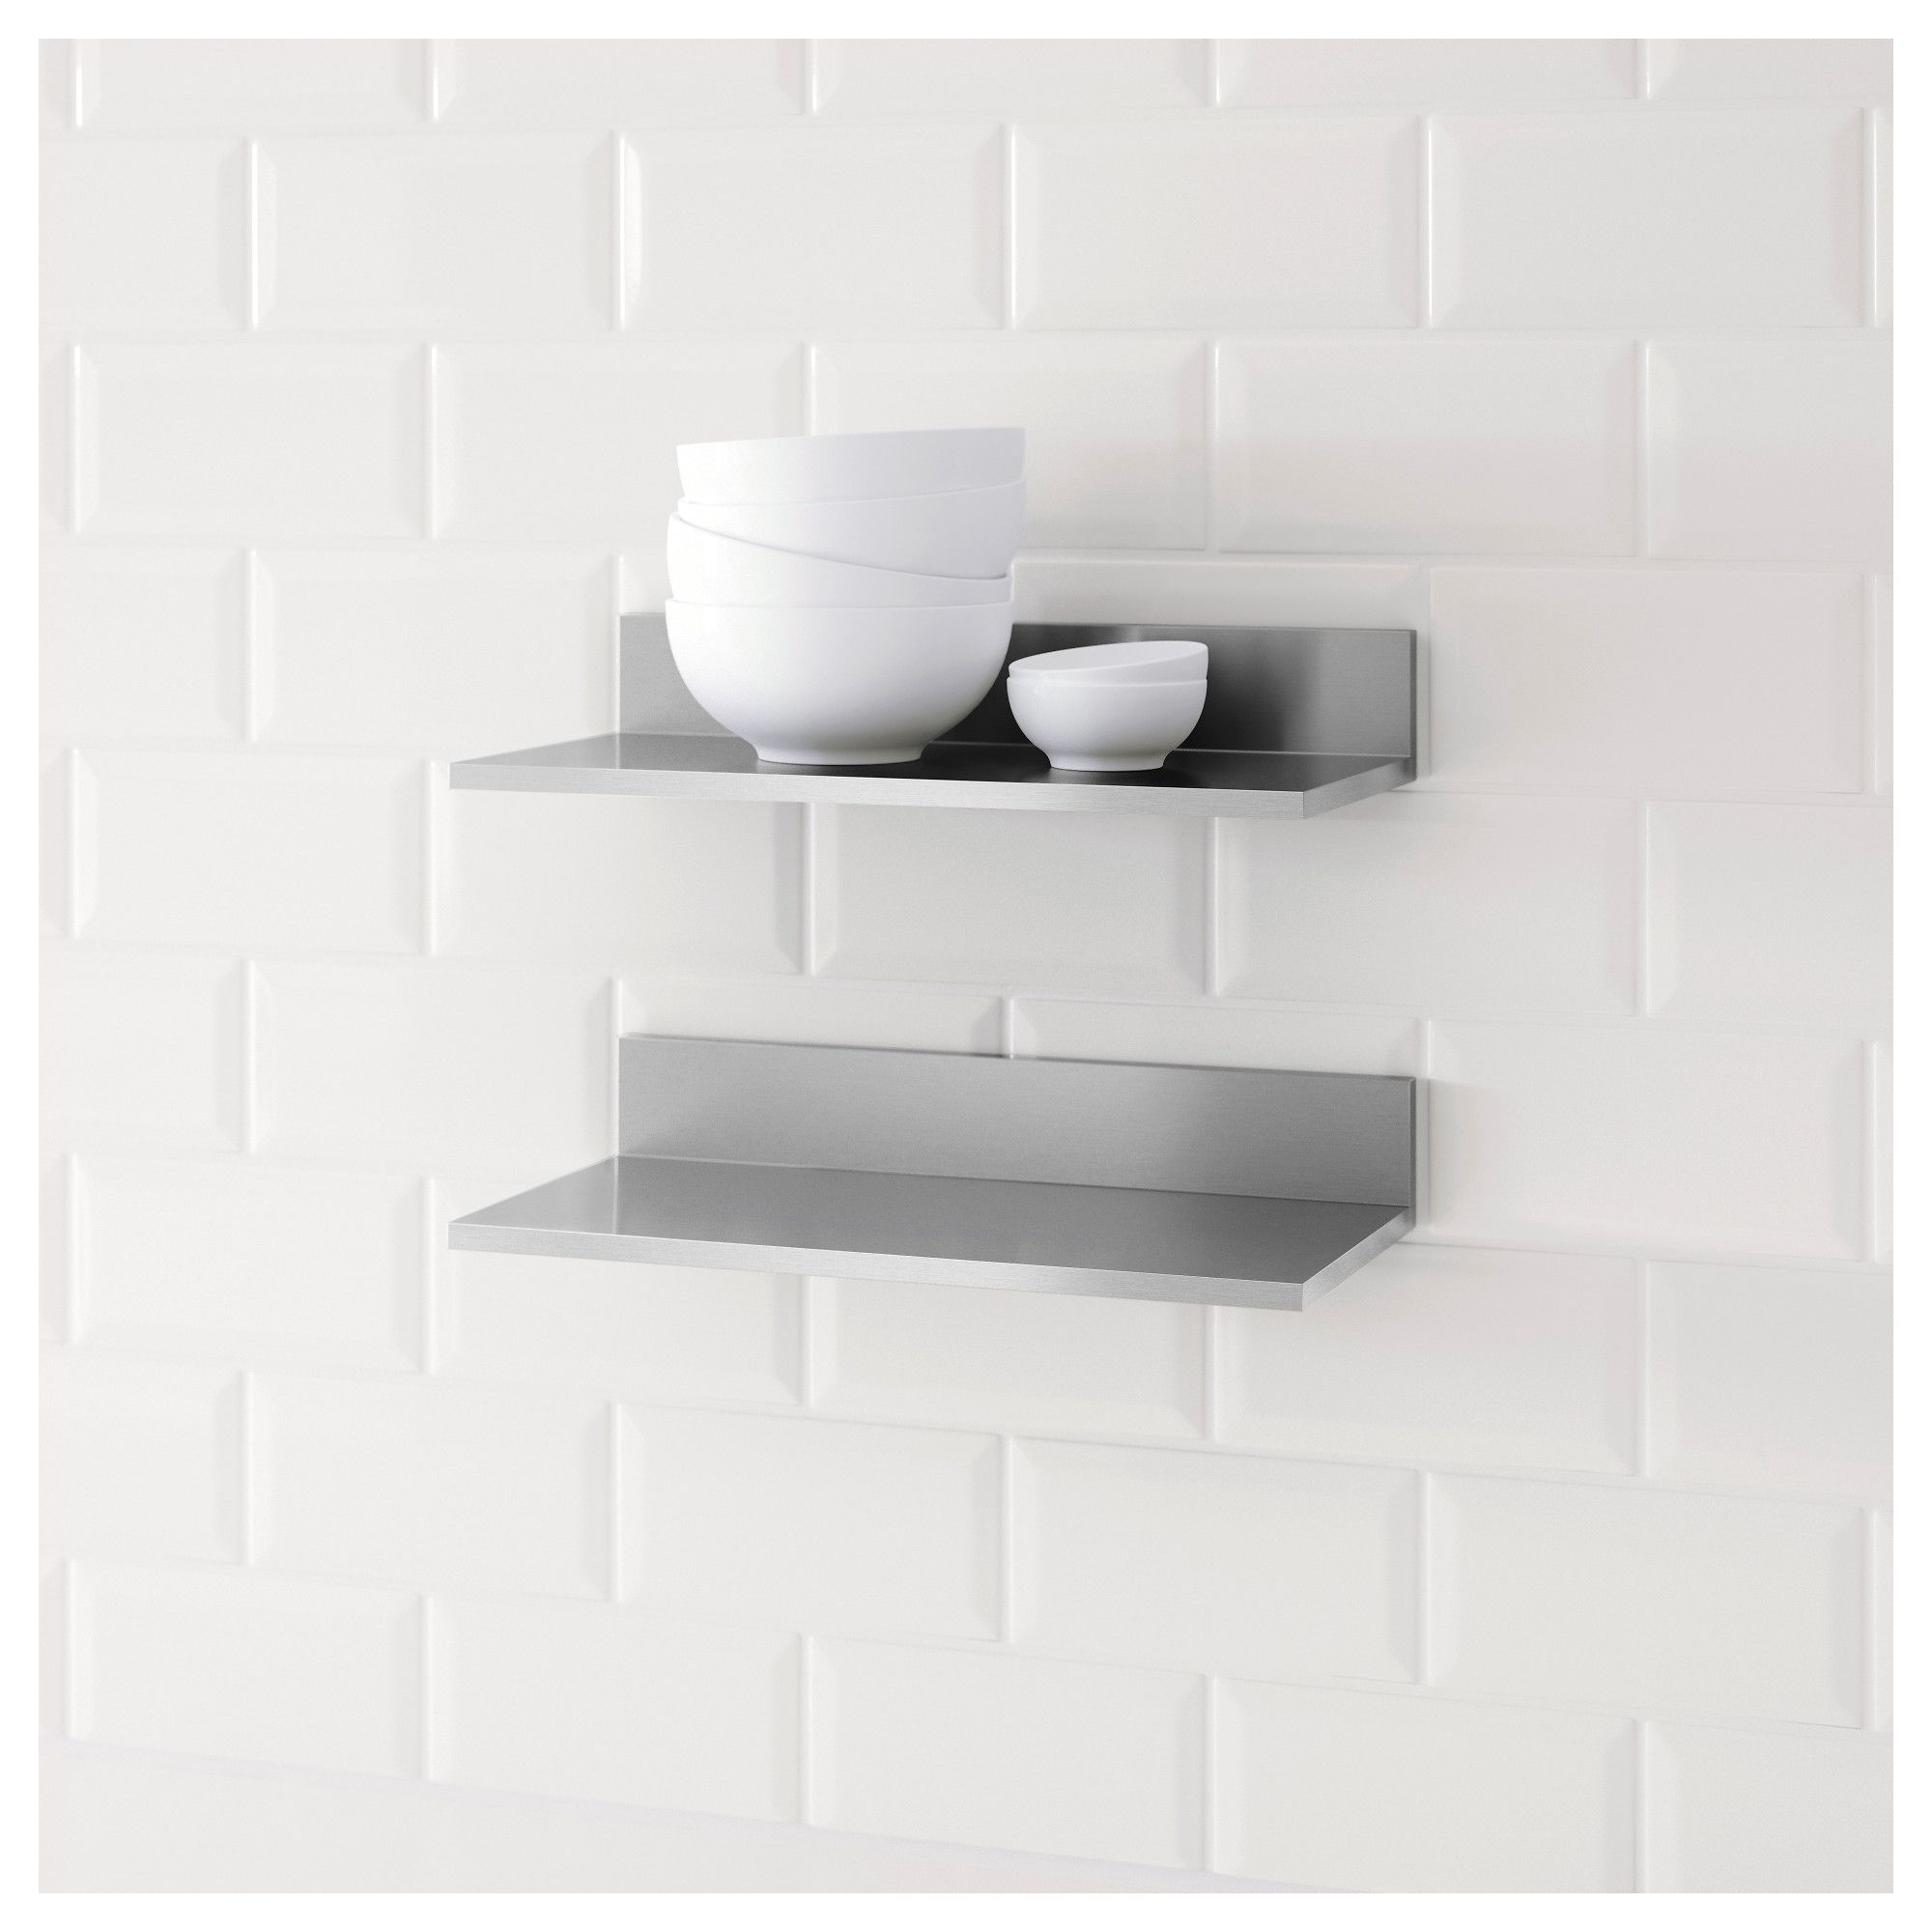 Shop For Furniture Home Accessories More Wall Shelves